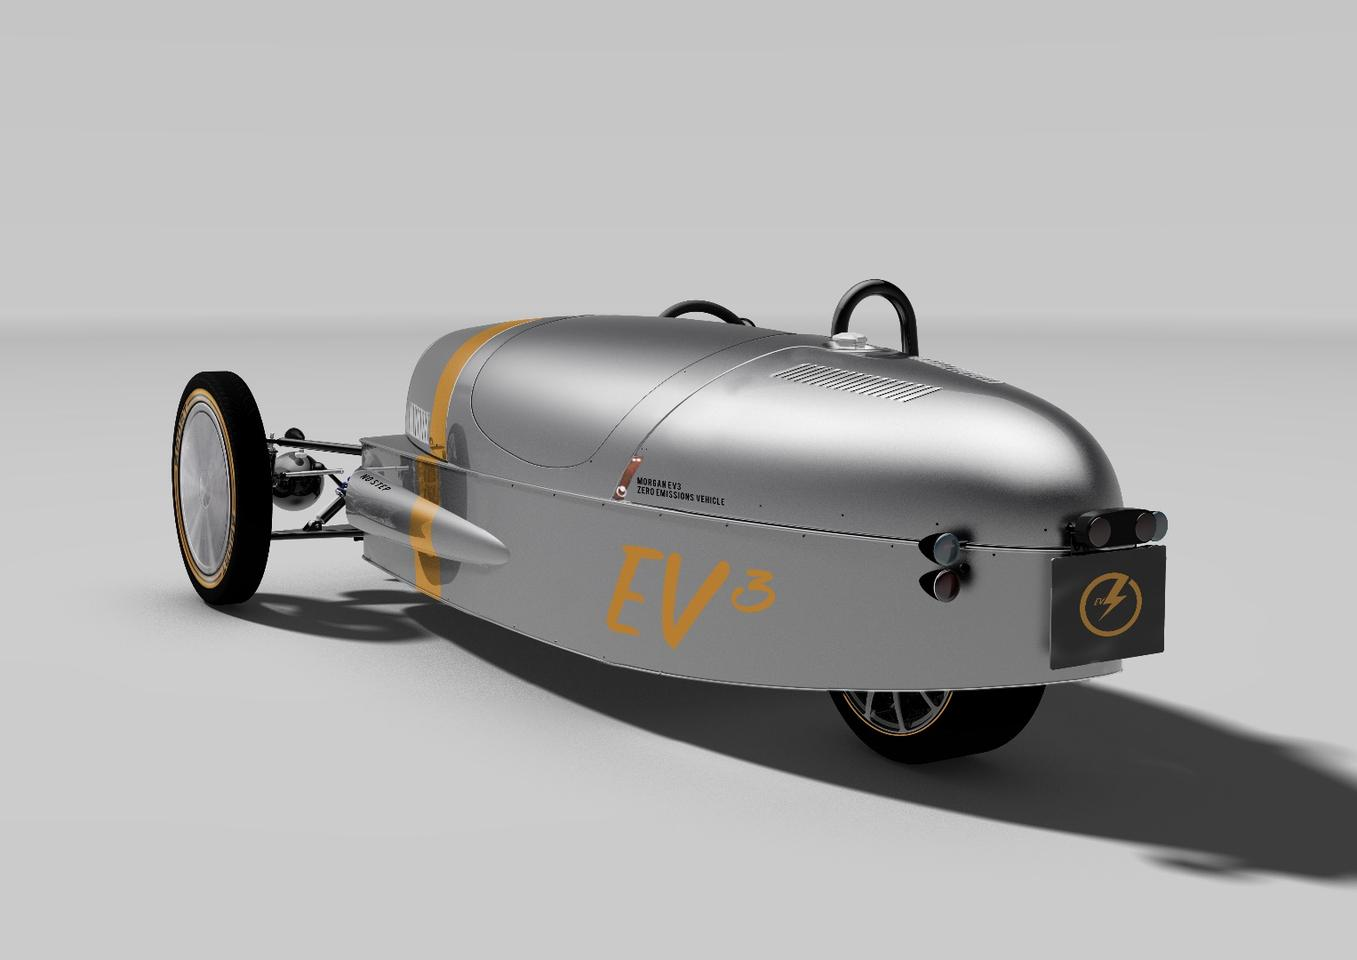 Morgan believes the EV3 can deliver 150 miles (241 km) of range